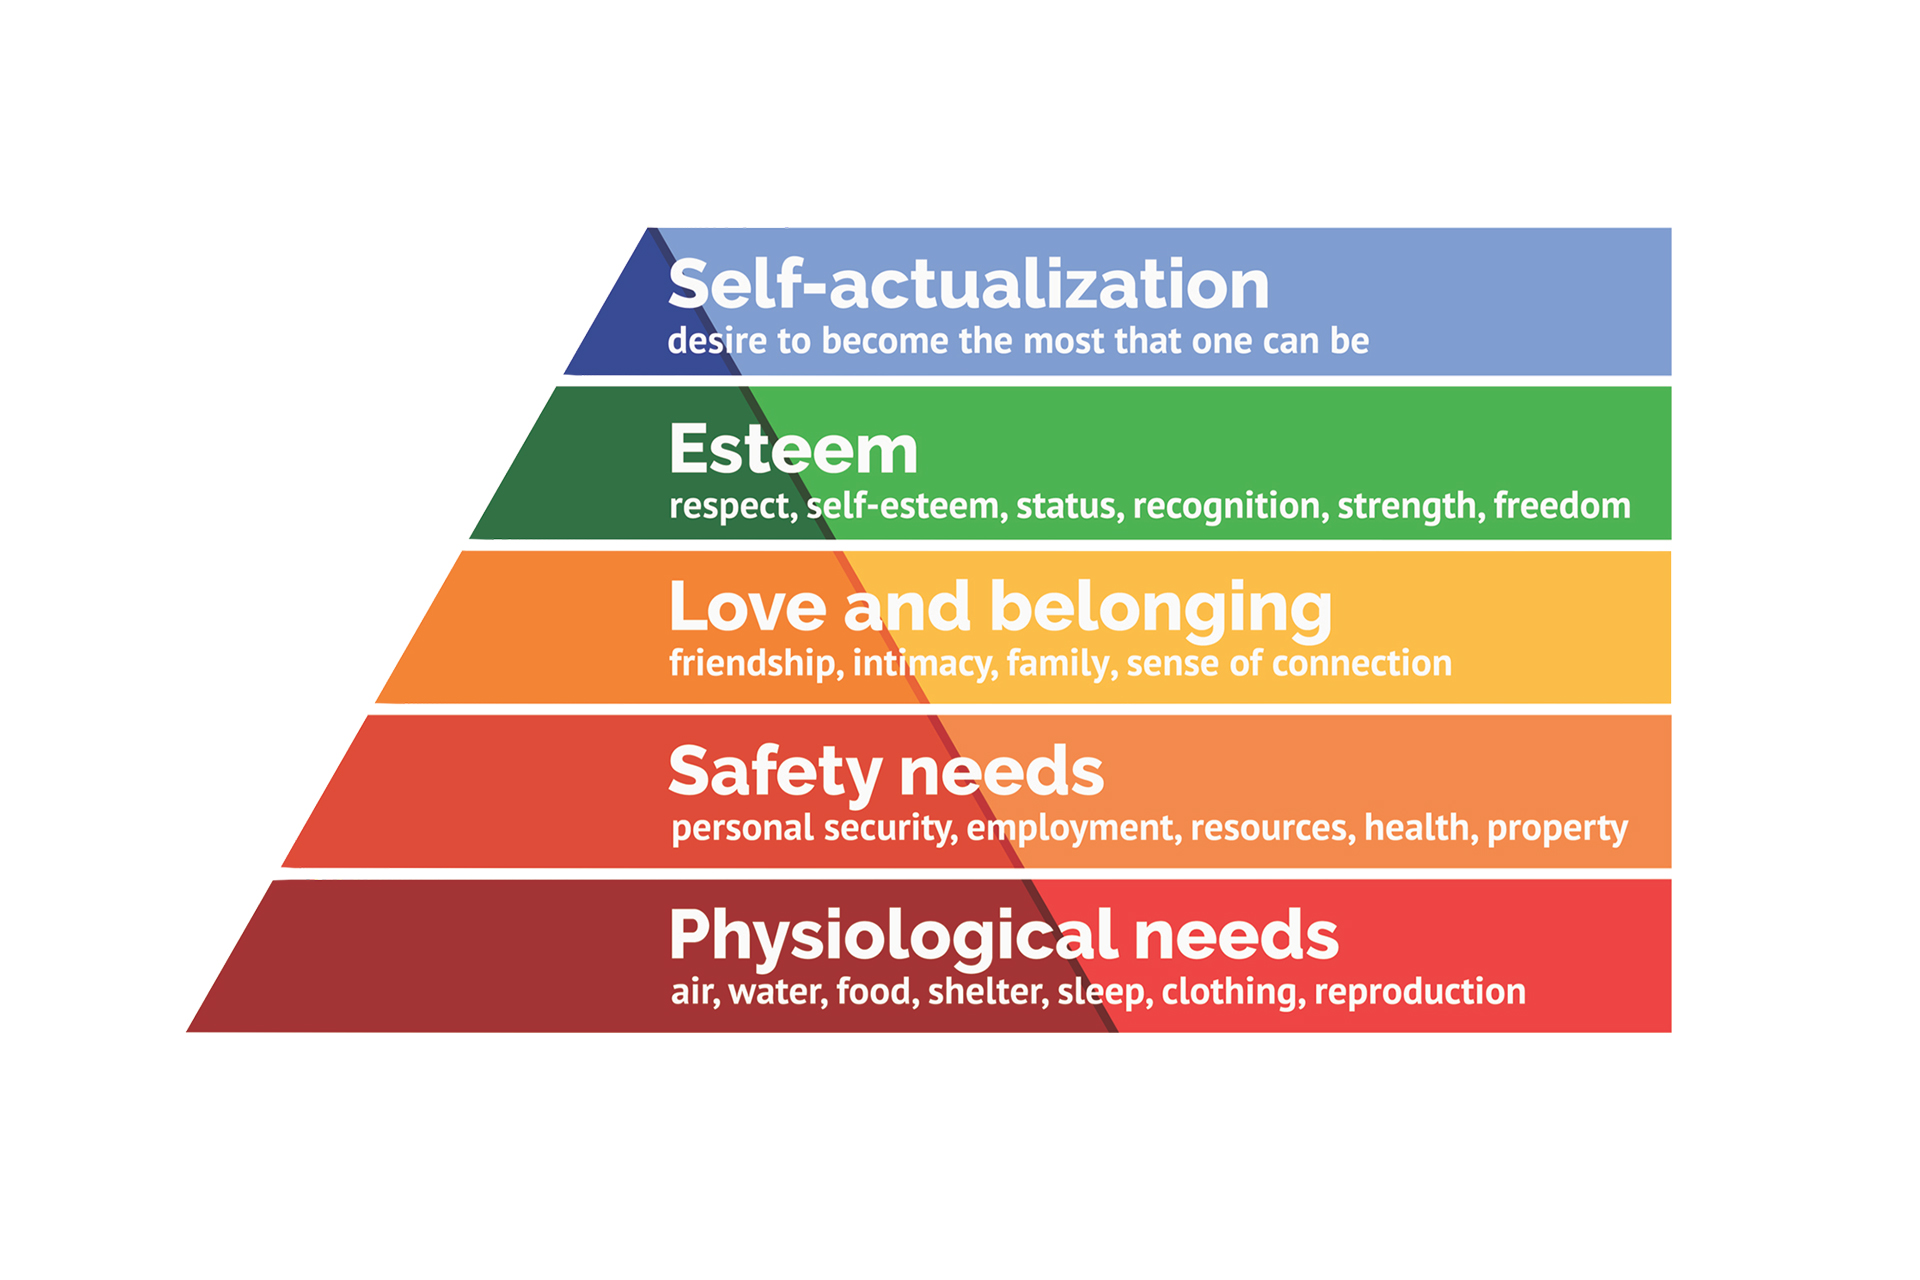 Maslow's hierarchy of needs in today's world